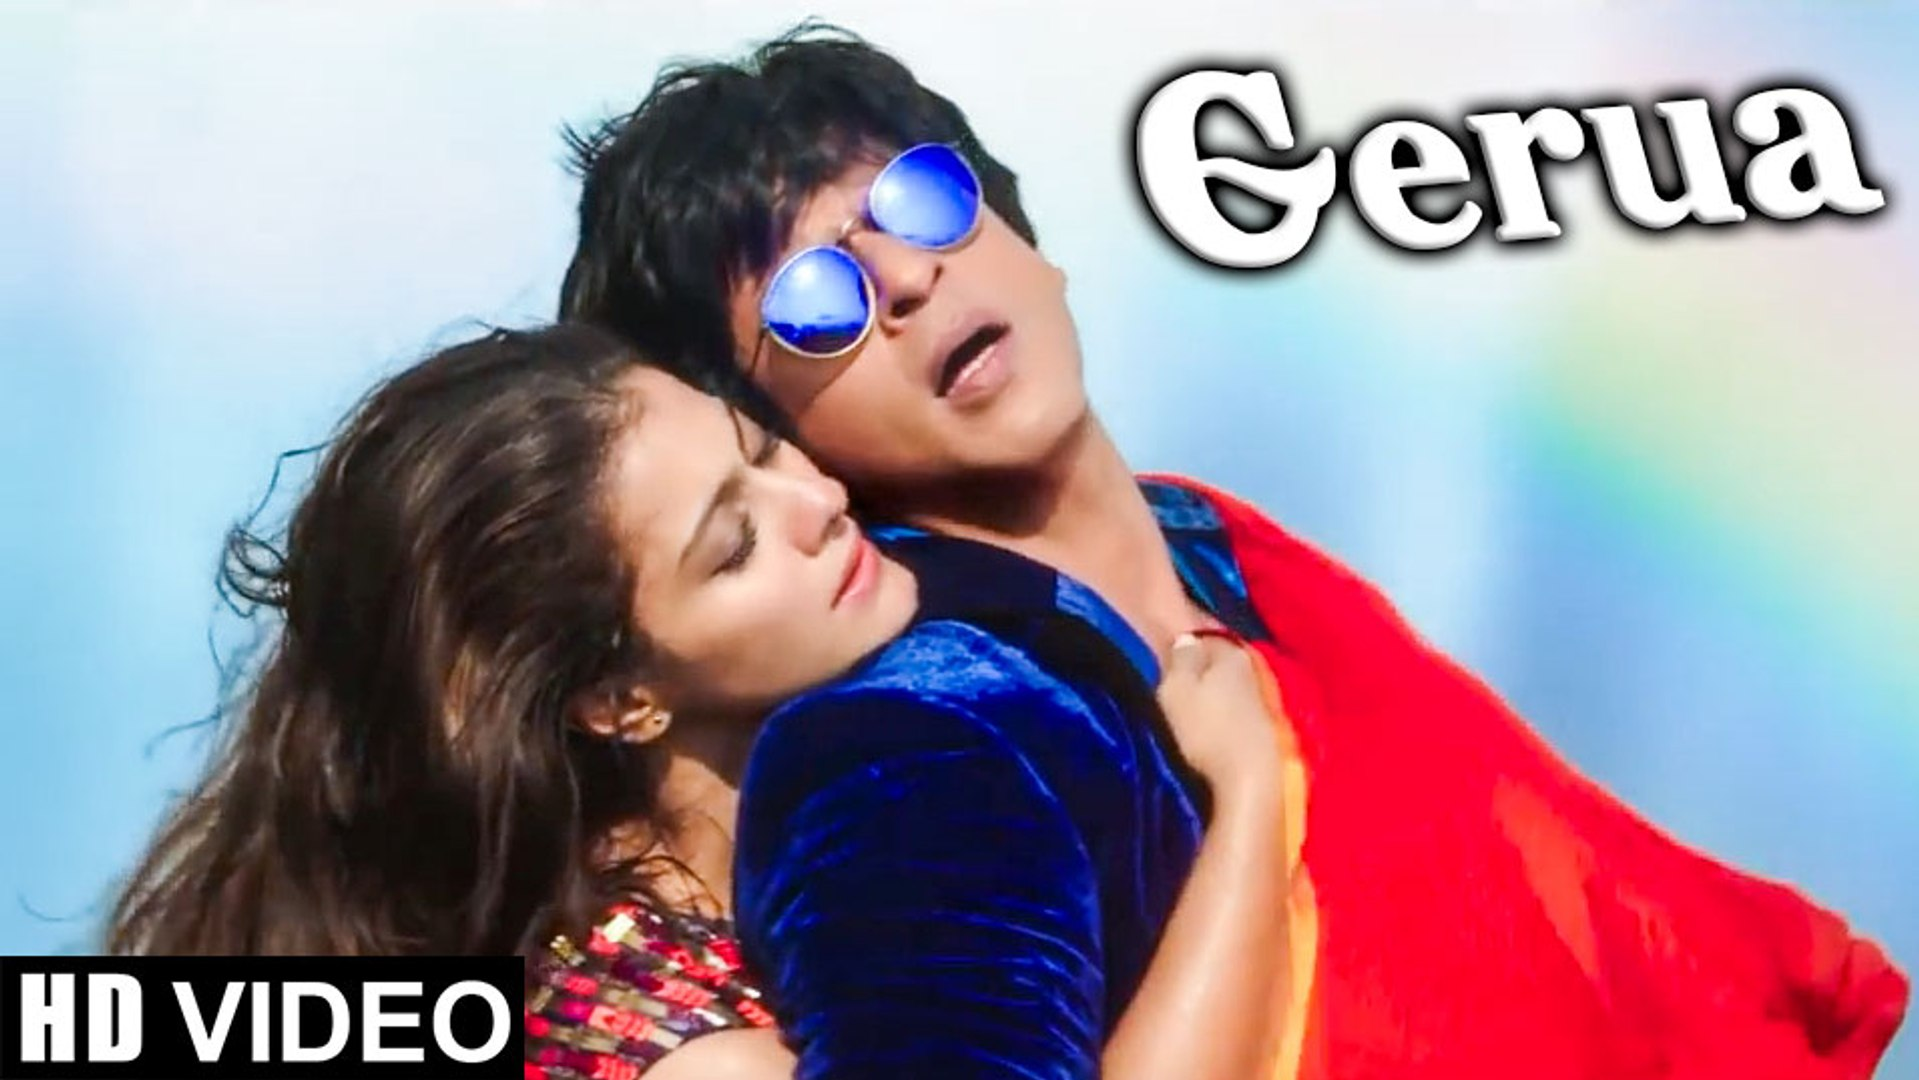 Gerua HD Video Song Dilwale 2015 Shah Rukh Khan, Kajol | New Indian Songs  2015